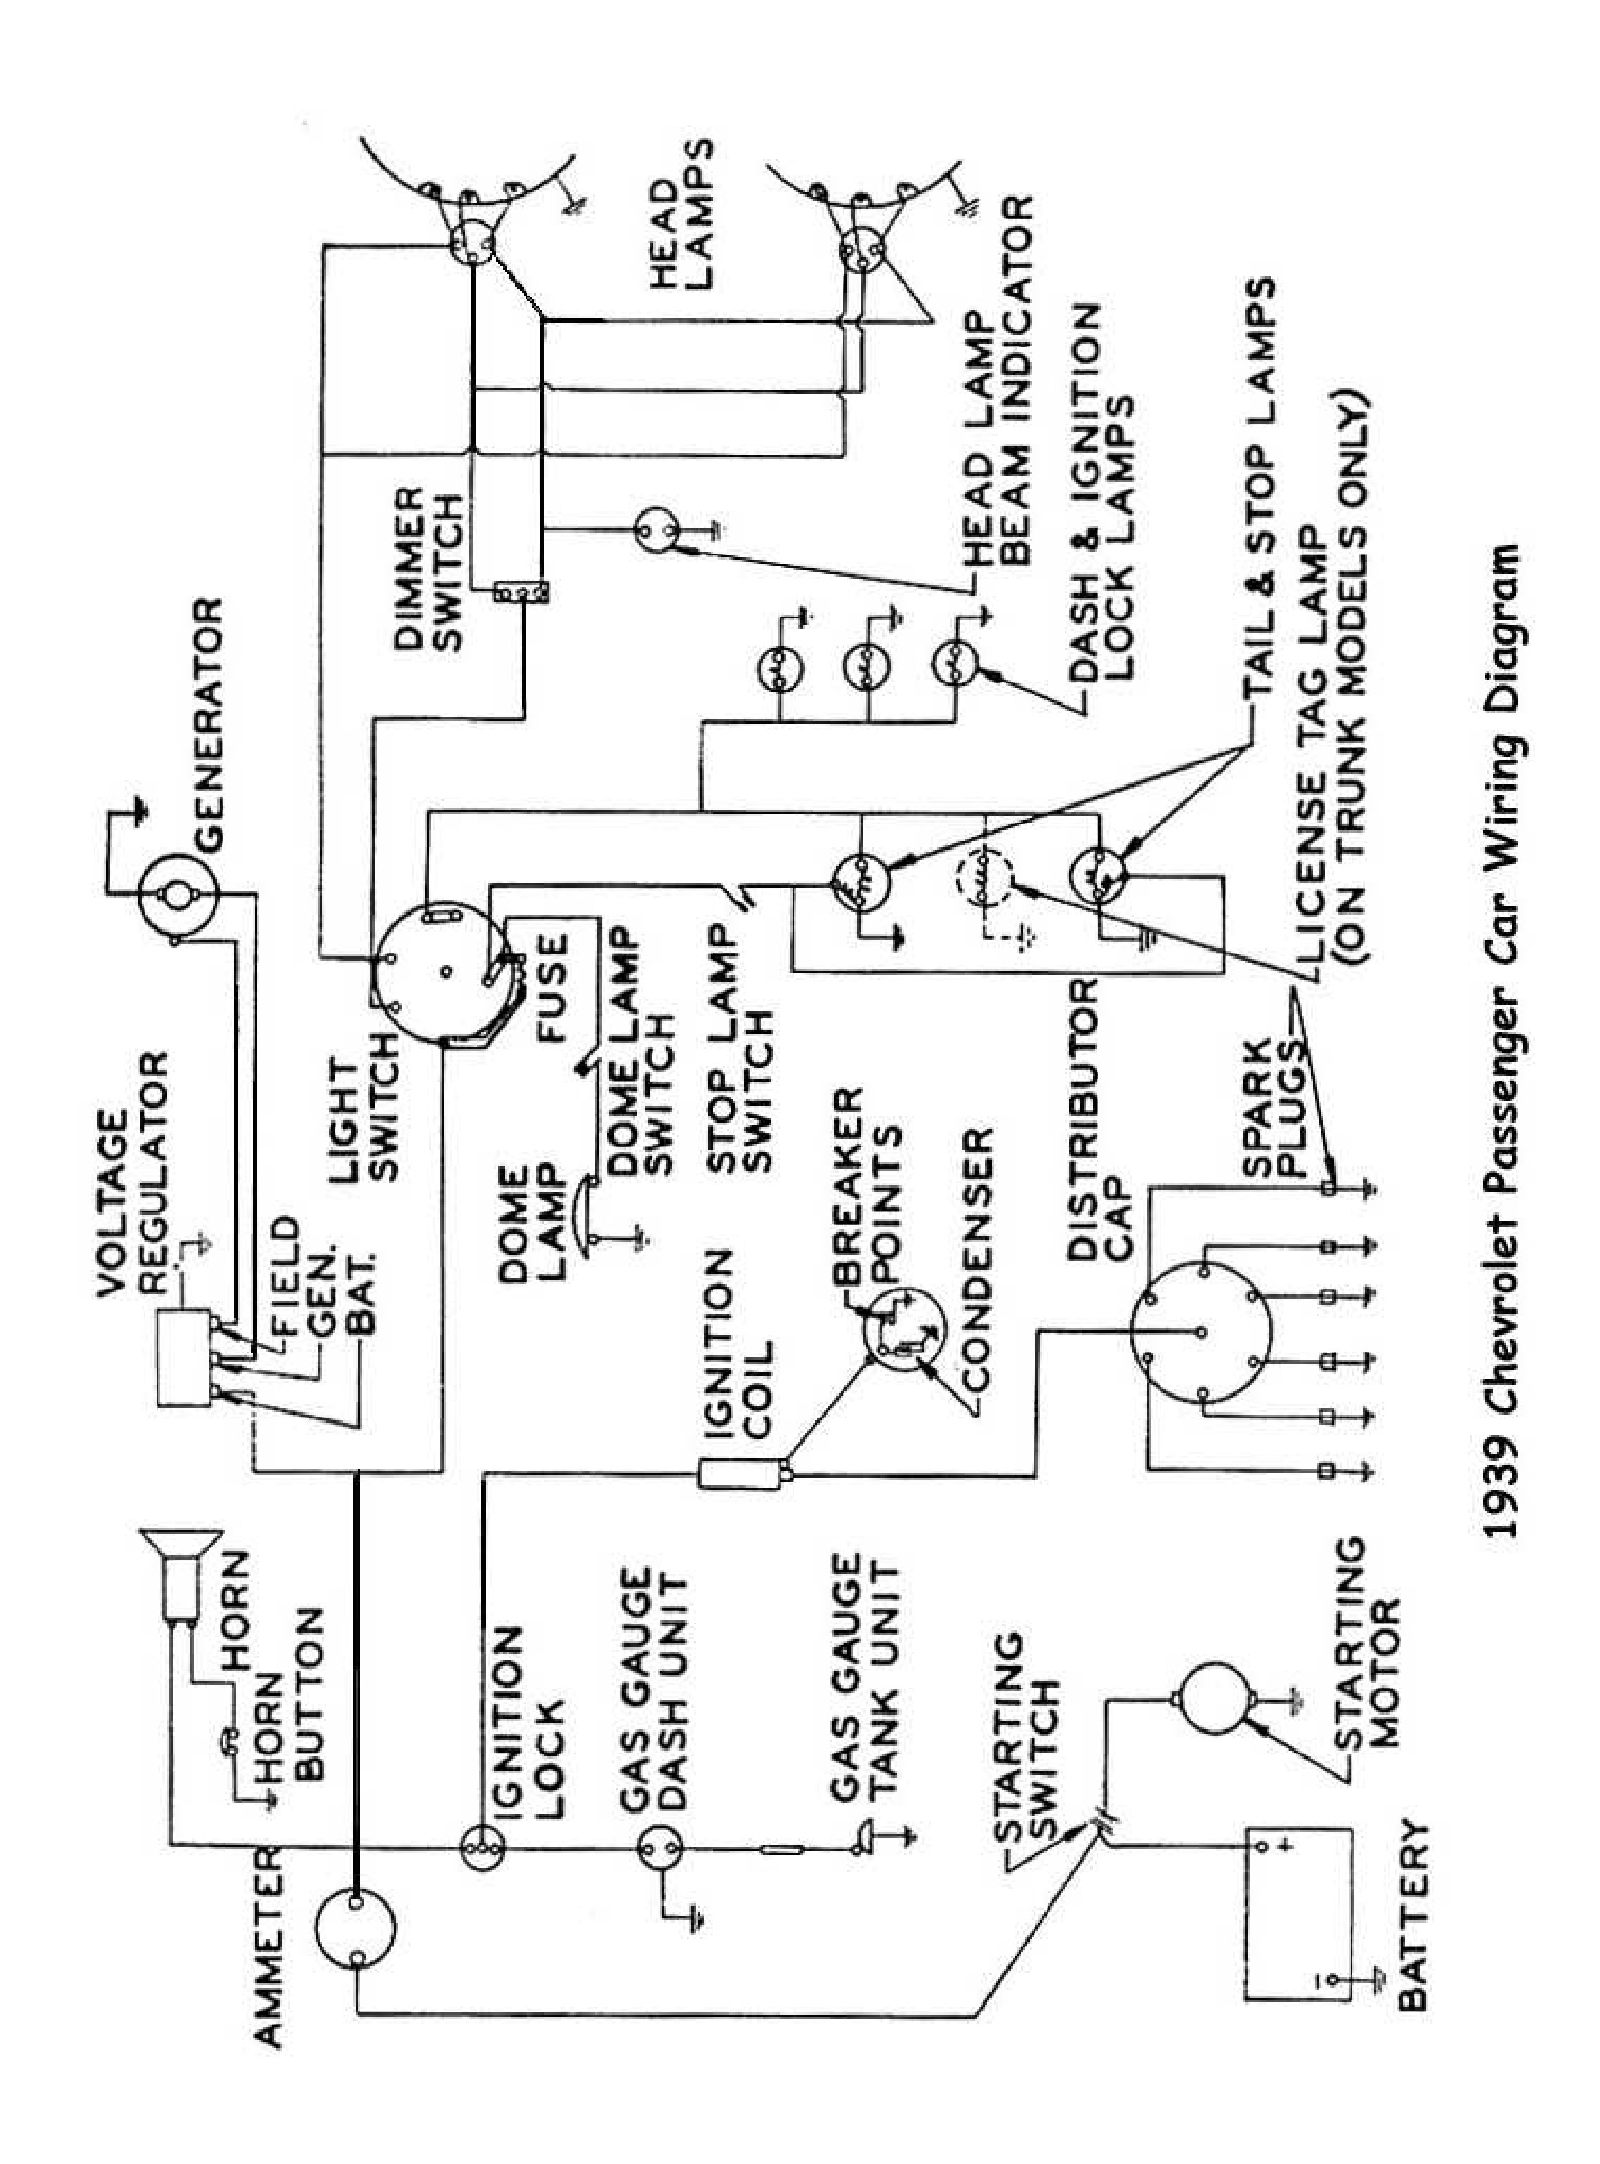 39car chevy wiring diagrams Dimmer Switch Installation Diagram at crackthecode.co